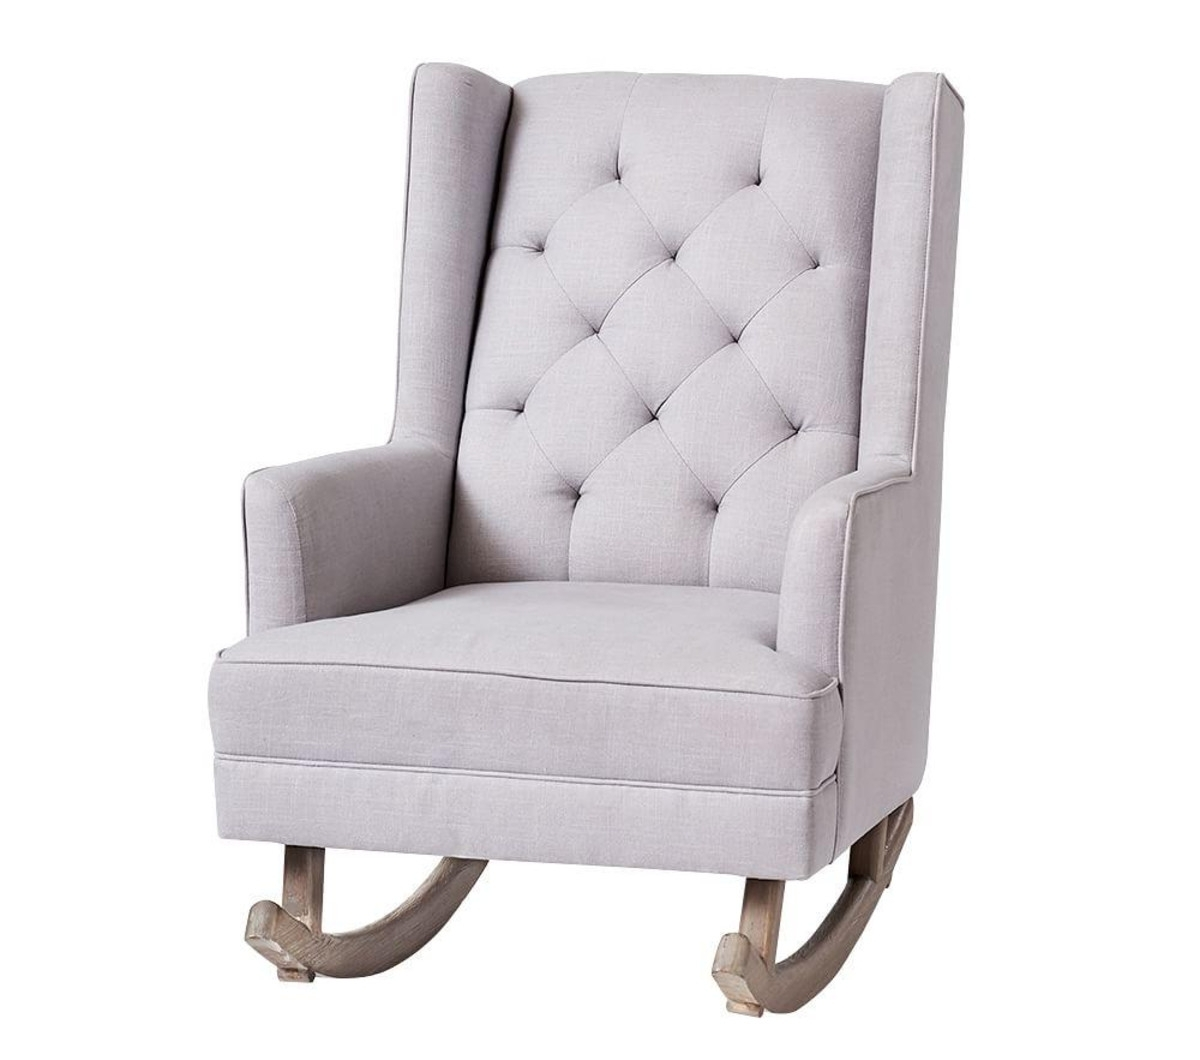 Well Known Rocking Chair For Nursery Au F85X On Brilliant Furniture For Small Throughout Rocking Chairs For Small Spaces (View 11 of 15)